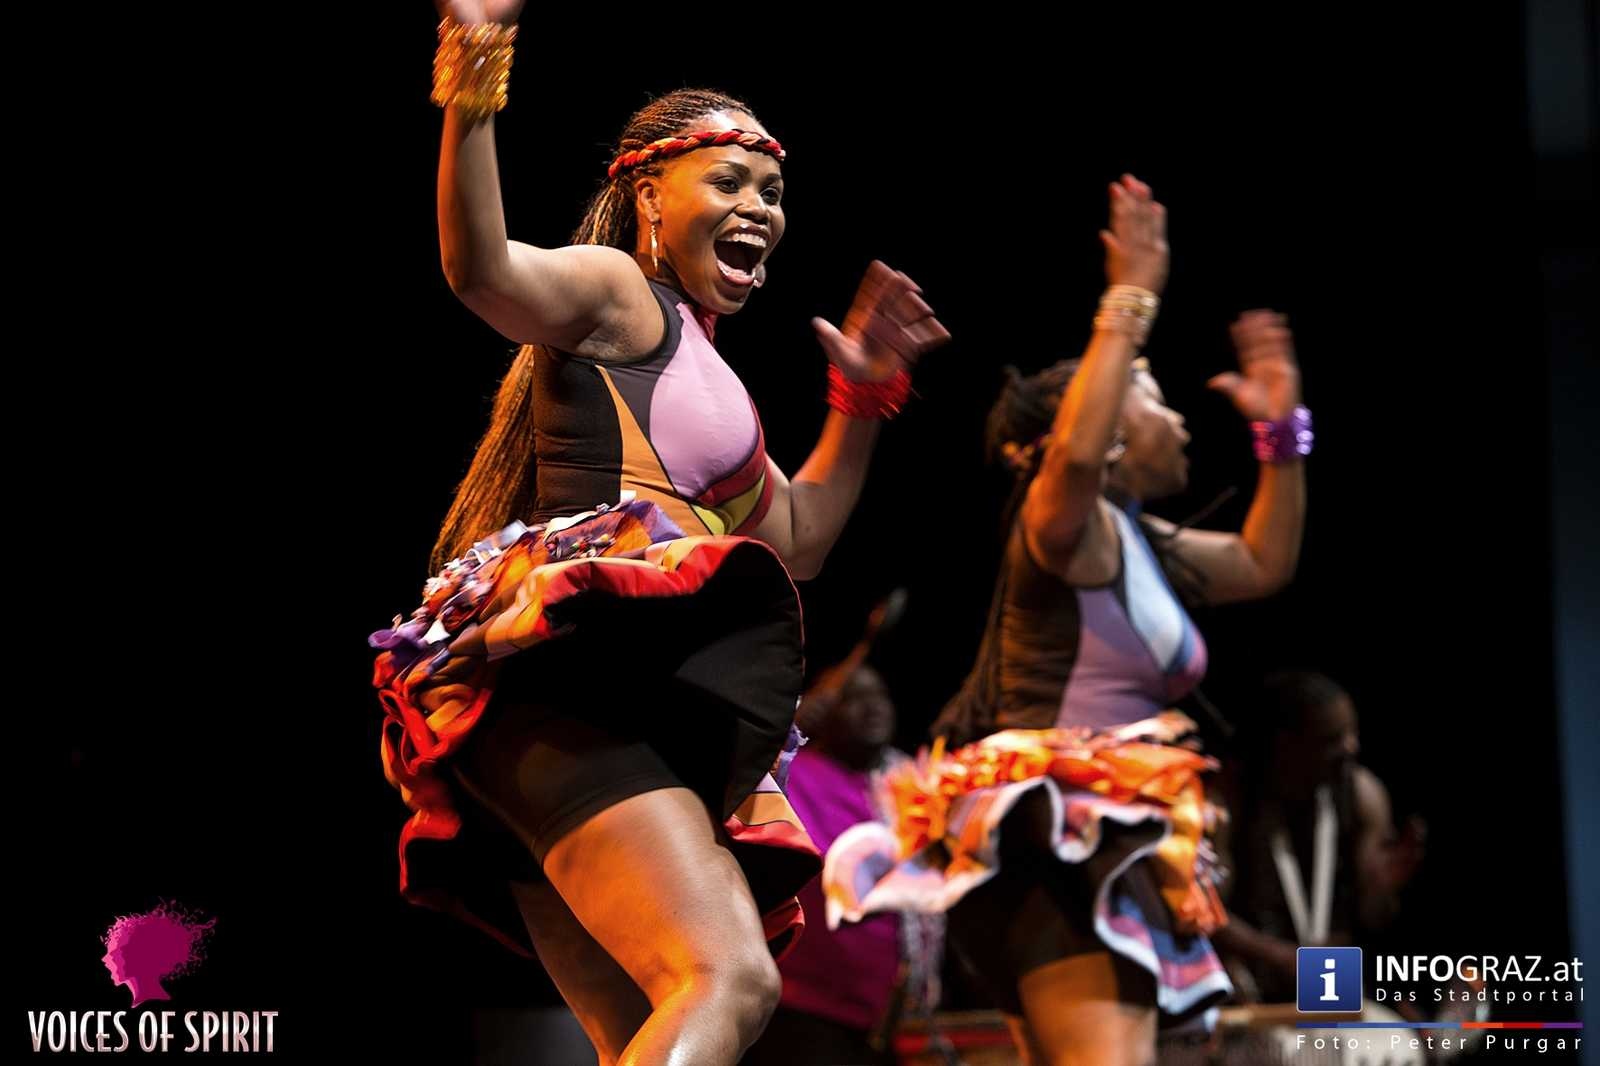 soweto gospel choir internationales chorfestival statdthalle graz voices of spirit eroeffnung festivals 2016 087